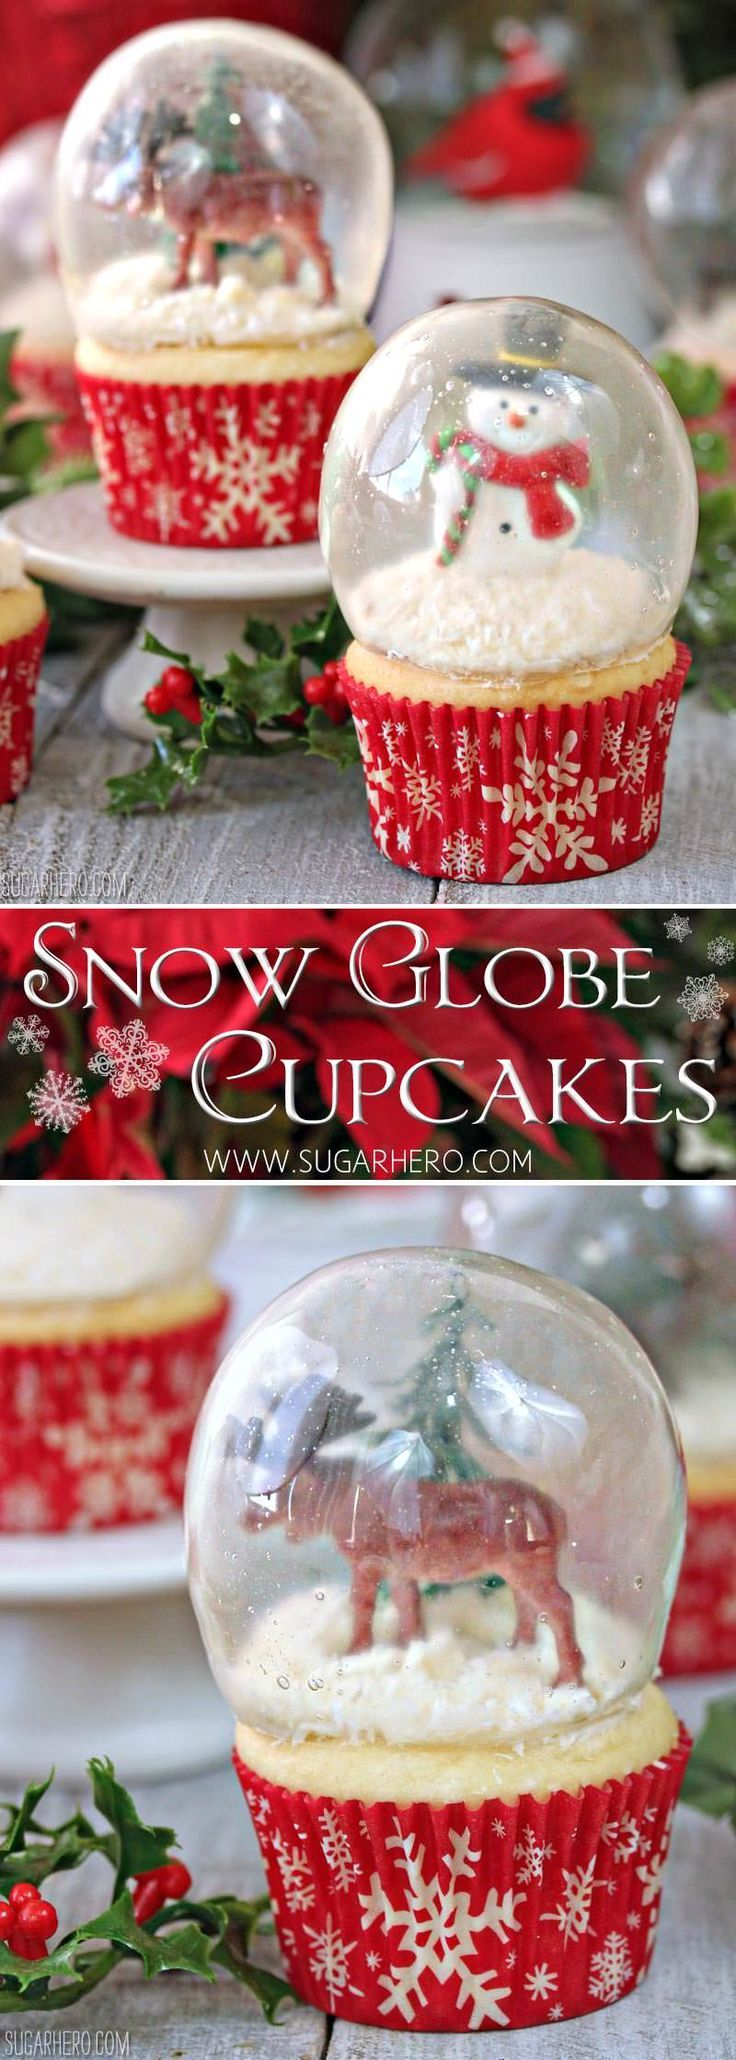 Snow Globe Cupcakes - the BEST Christmas cupcakes! Made with gelatin bubbles, so the entire cupcake is edible! | From http://SugarHero.com